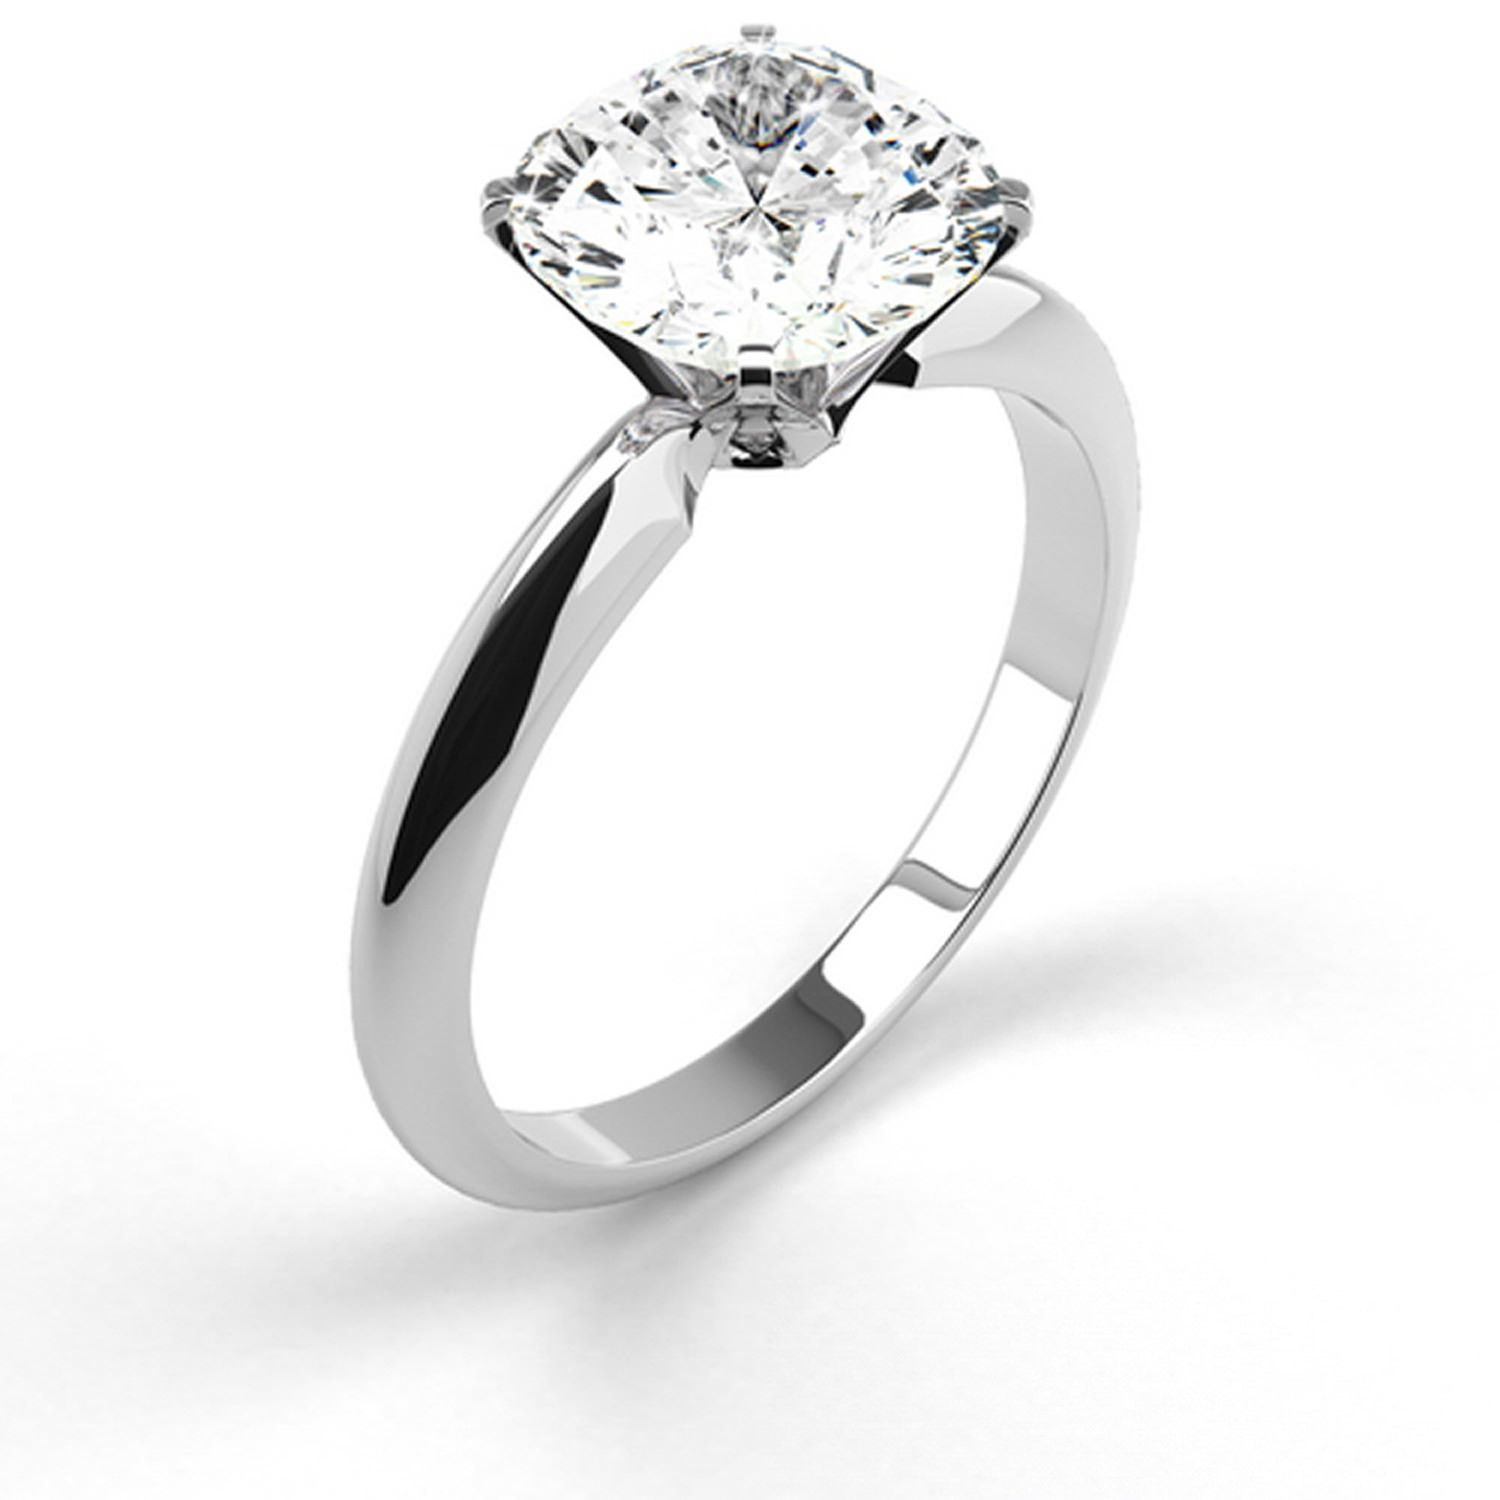 different jewellery luxury glance set any ways at accent on engagement settings ring quick to types gems of for be